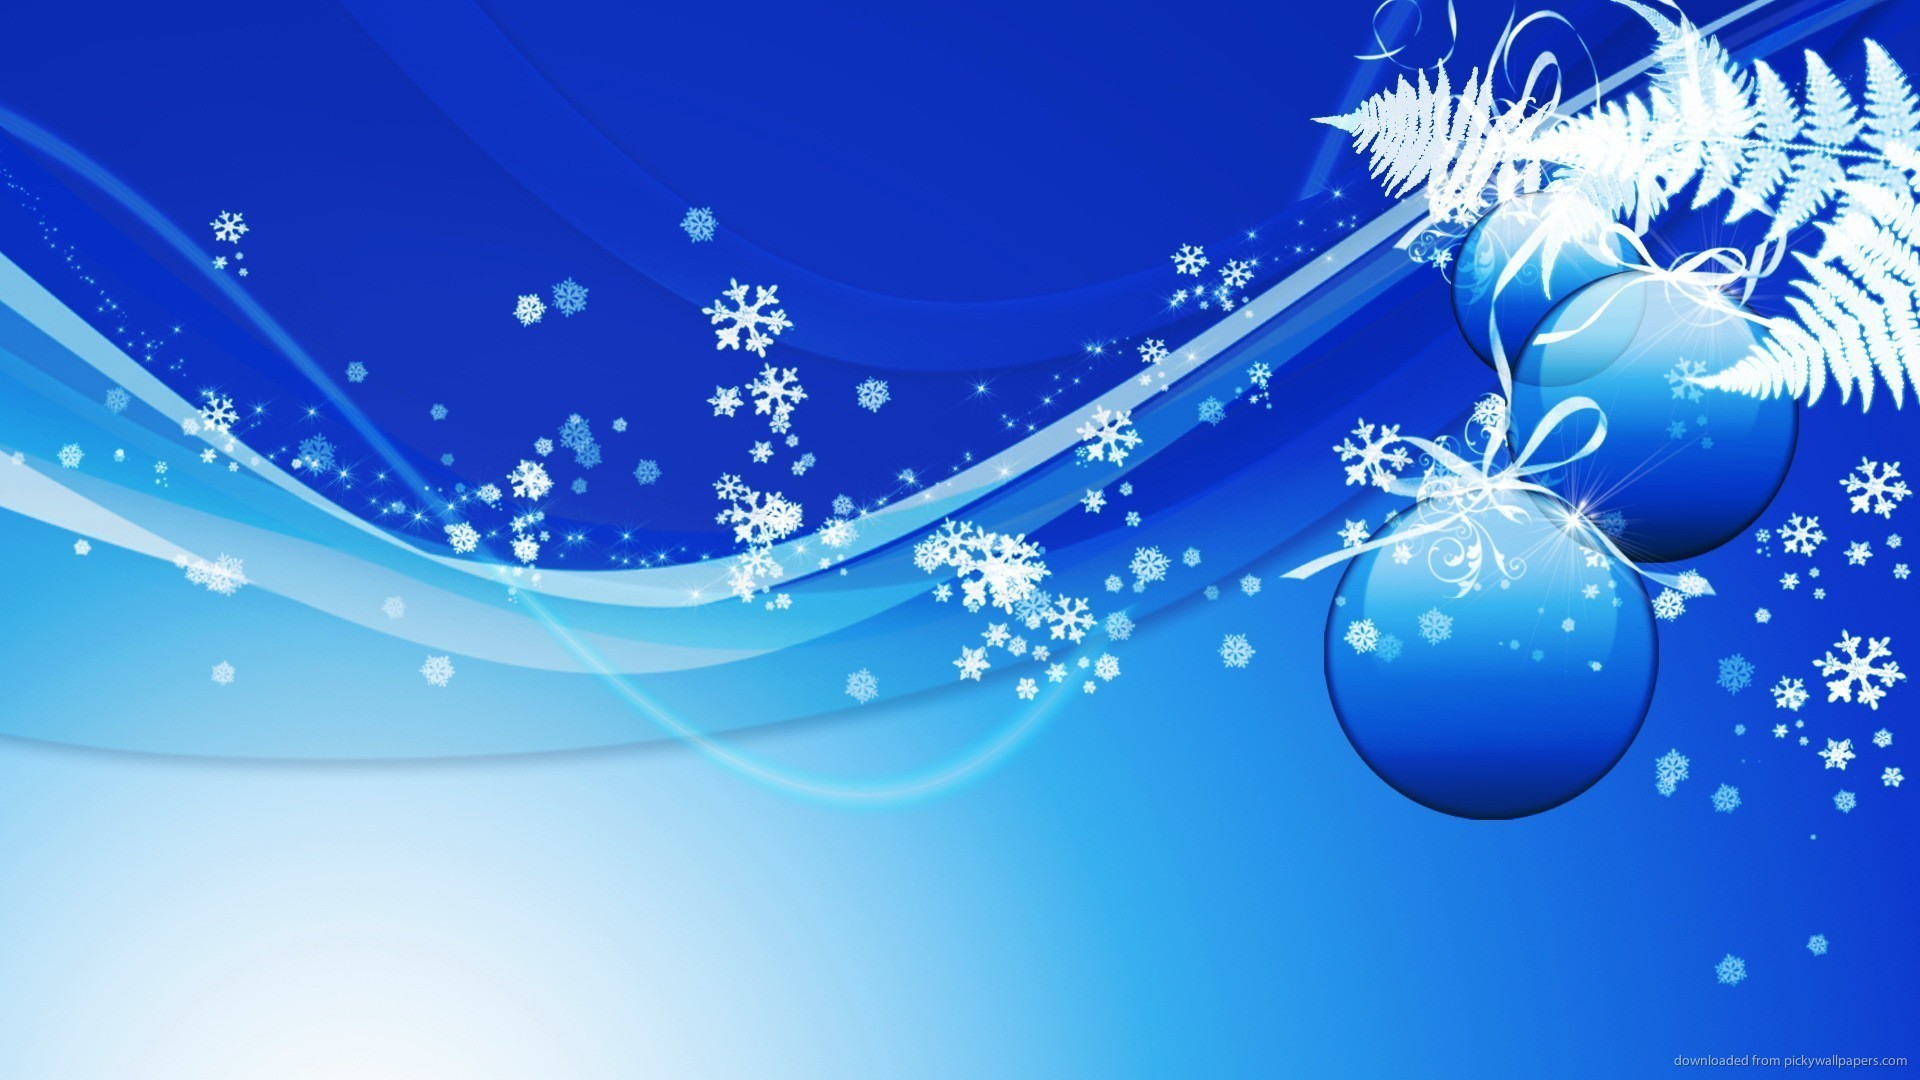 1920x1080 Blue Design Christmas Background picture